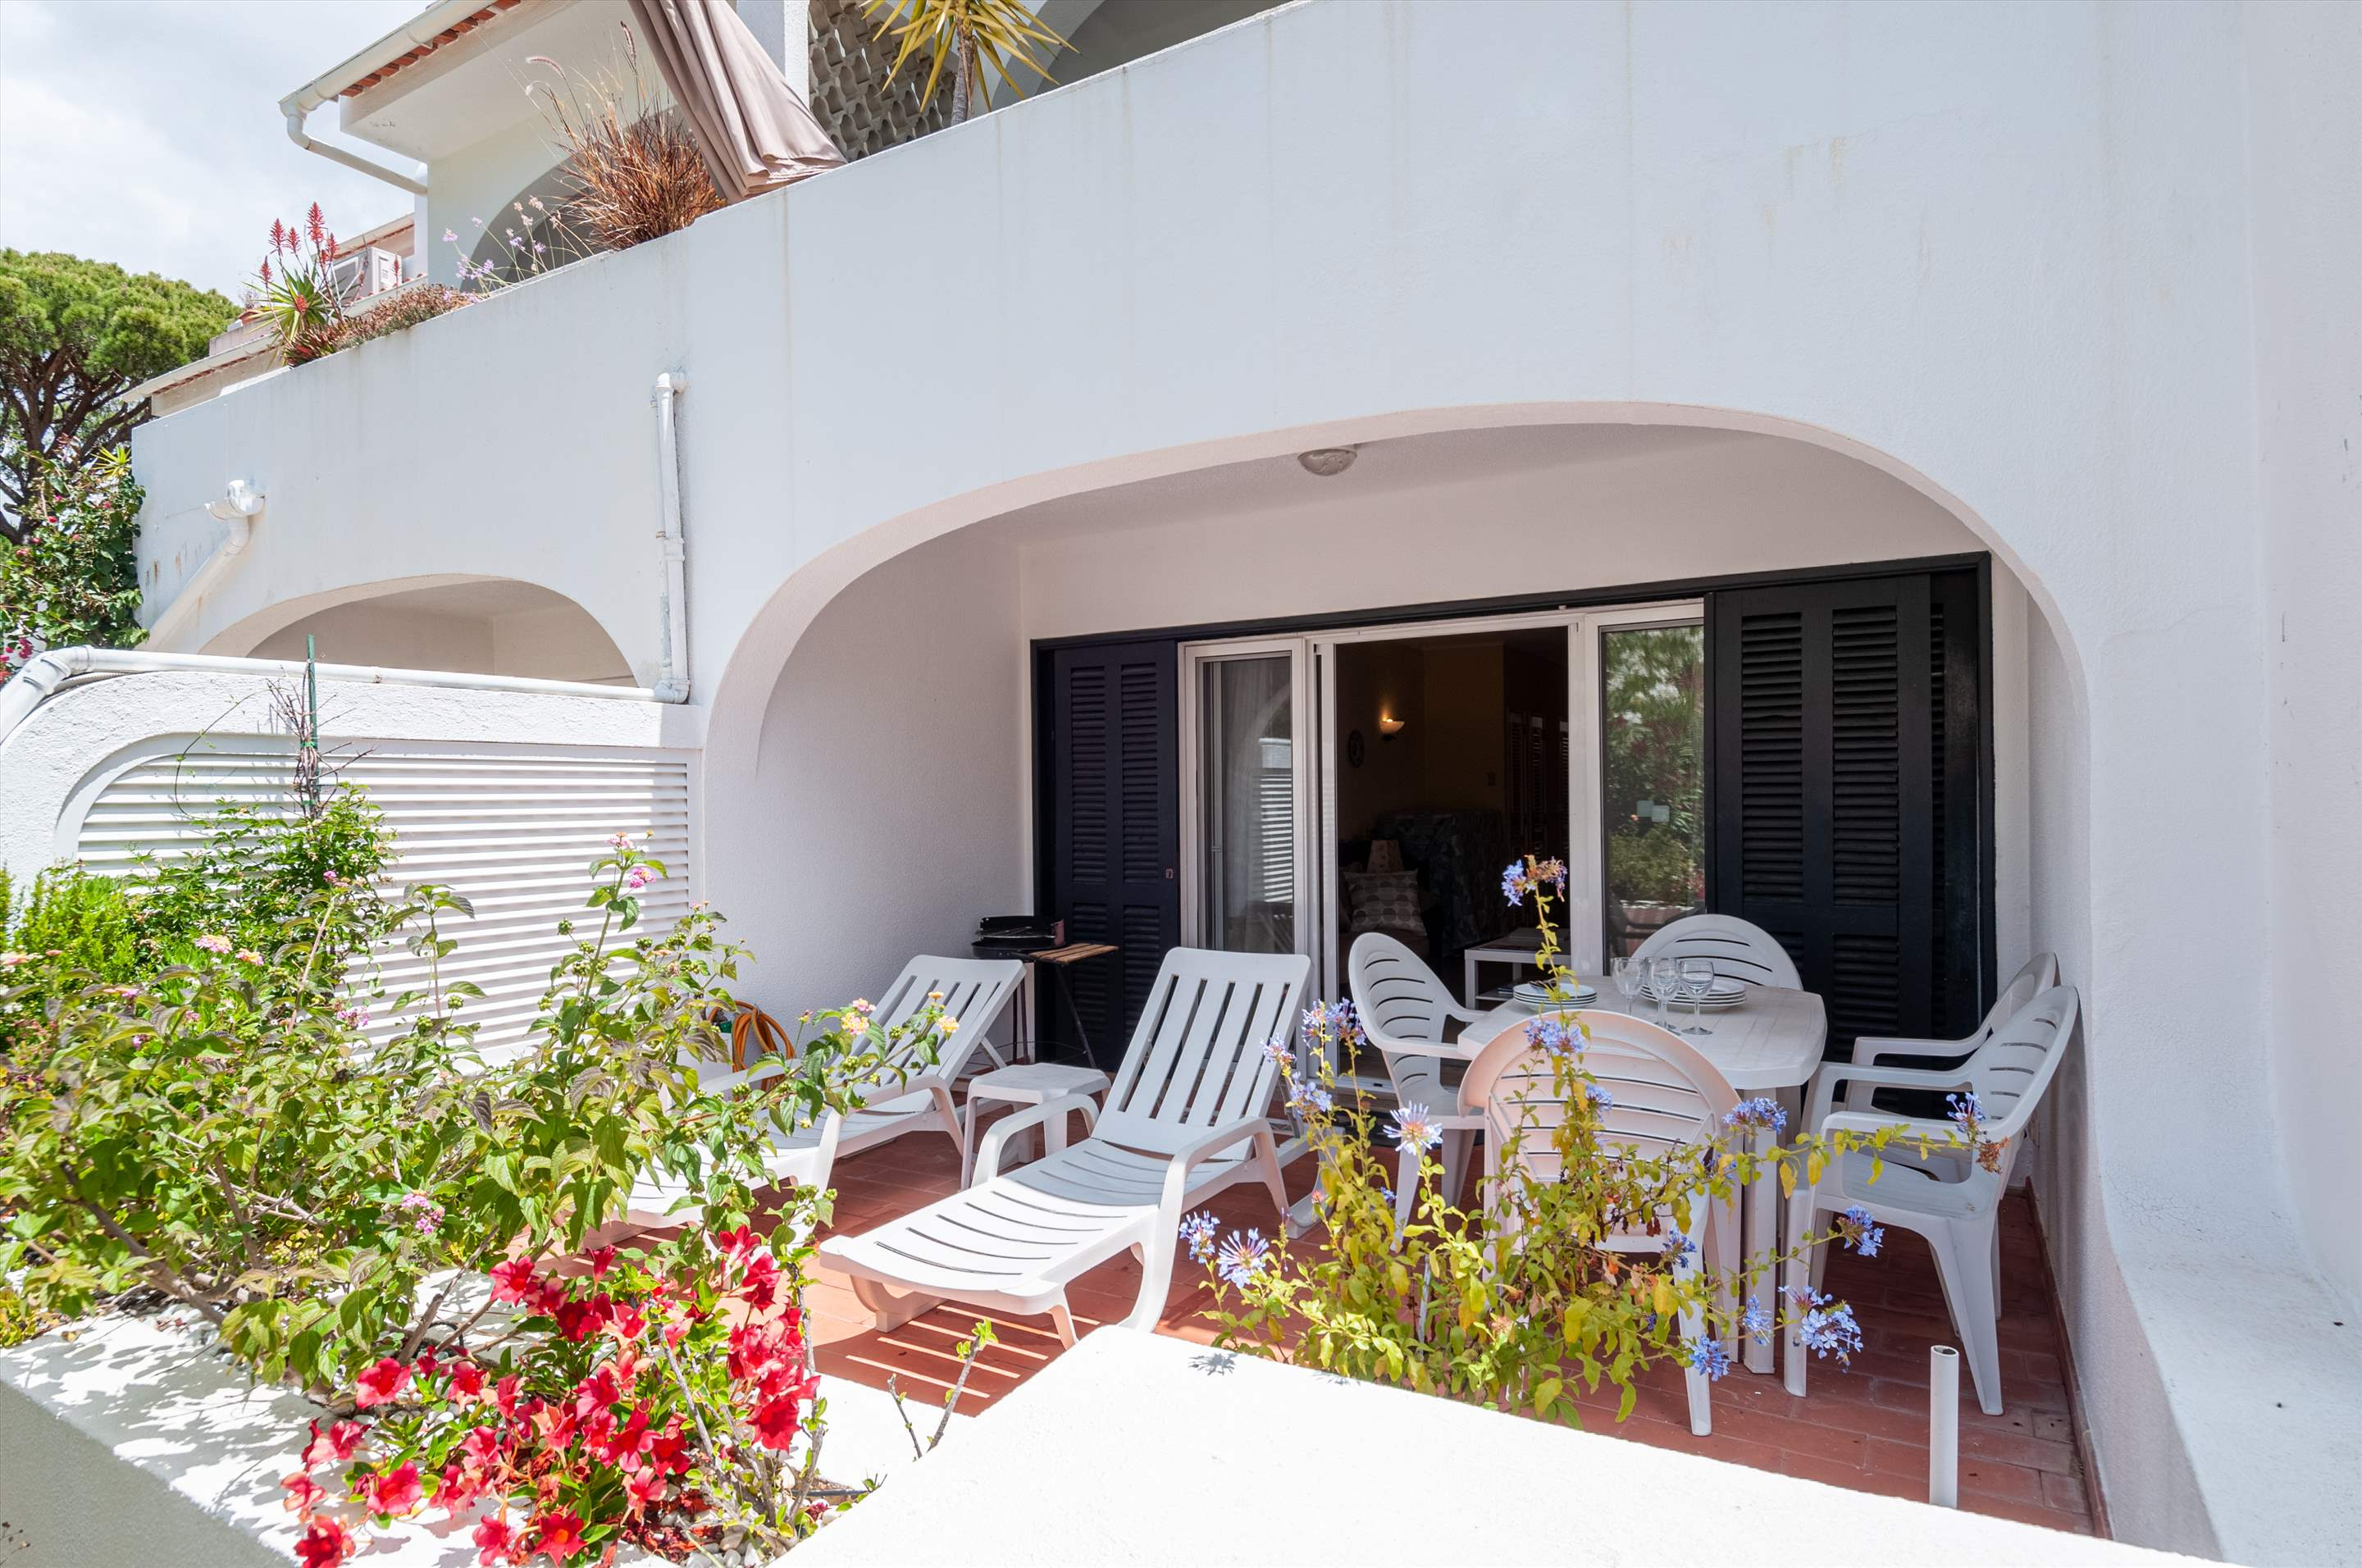 Apartment Joceta , 1 bedroom apartment in Vale do Lobo, Algarve Photo #1